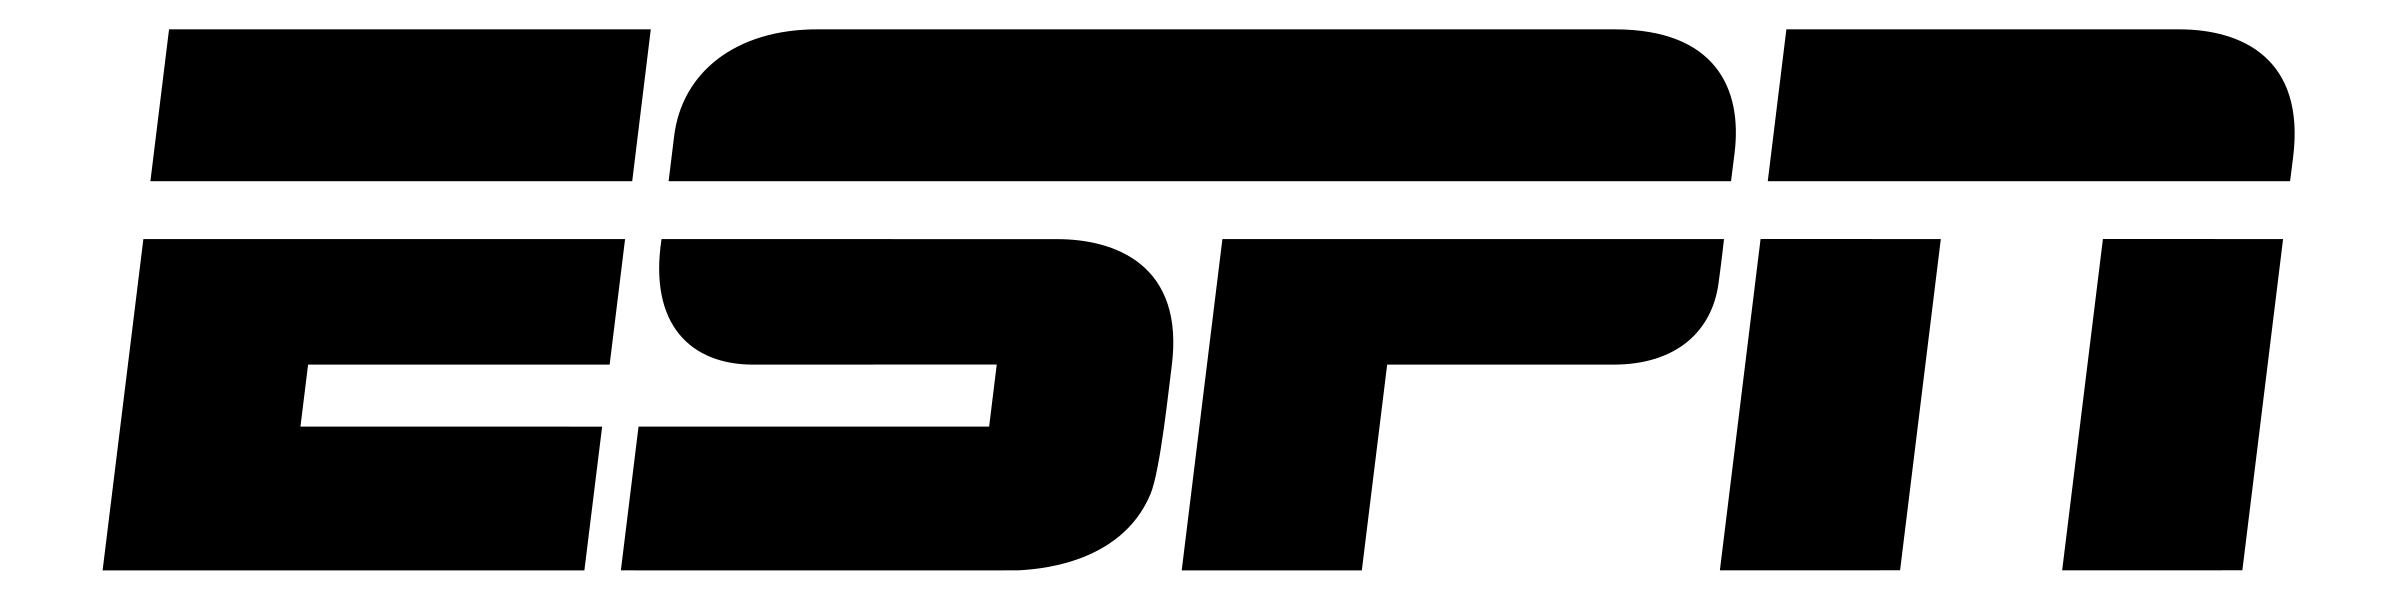 espn-logo-black-transparent